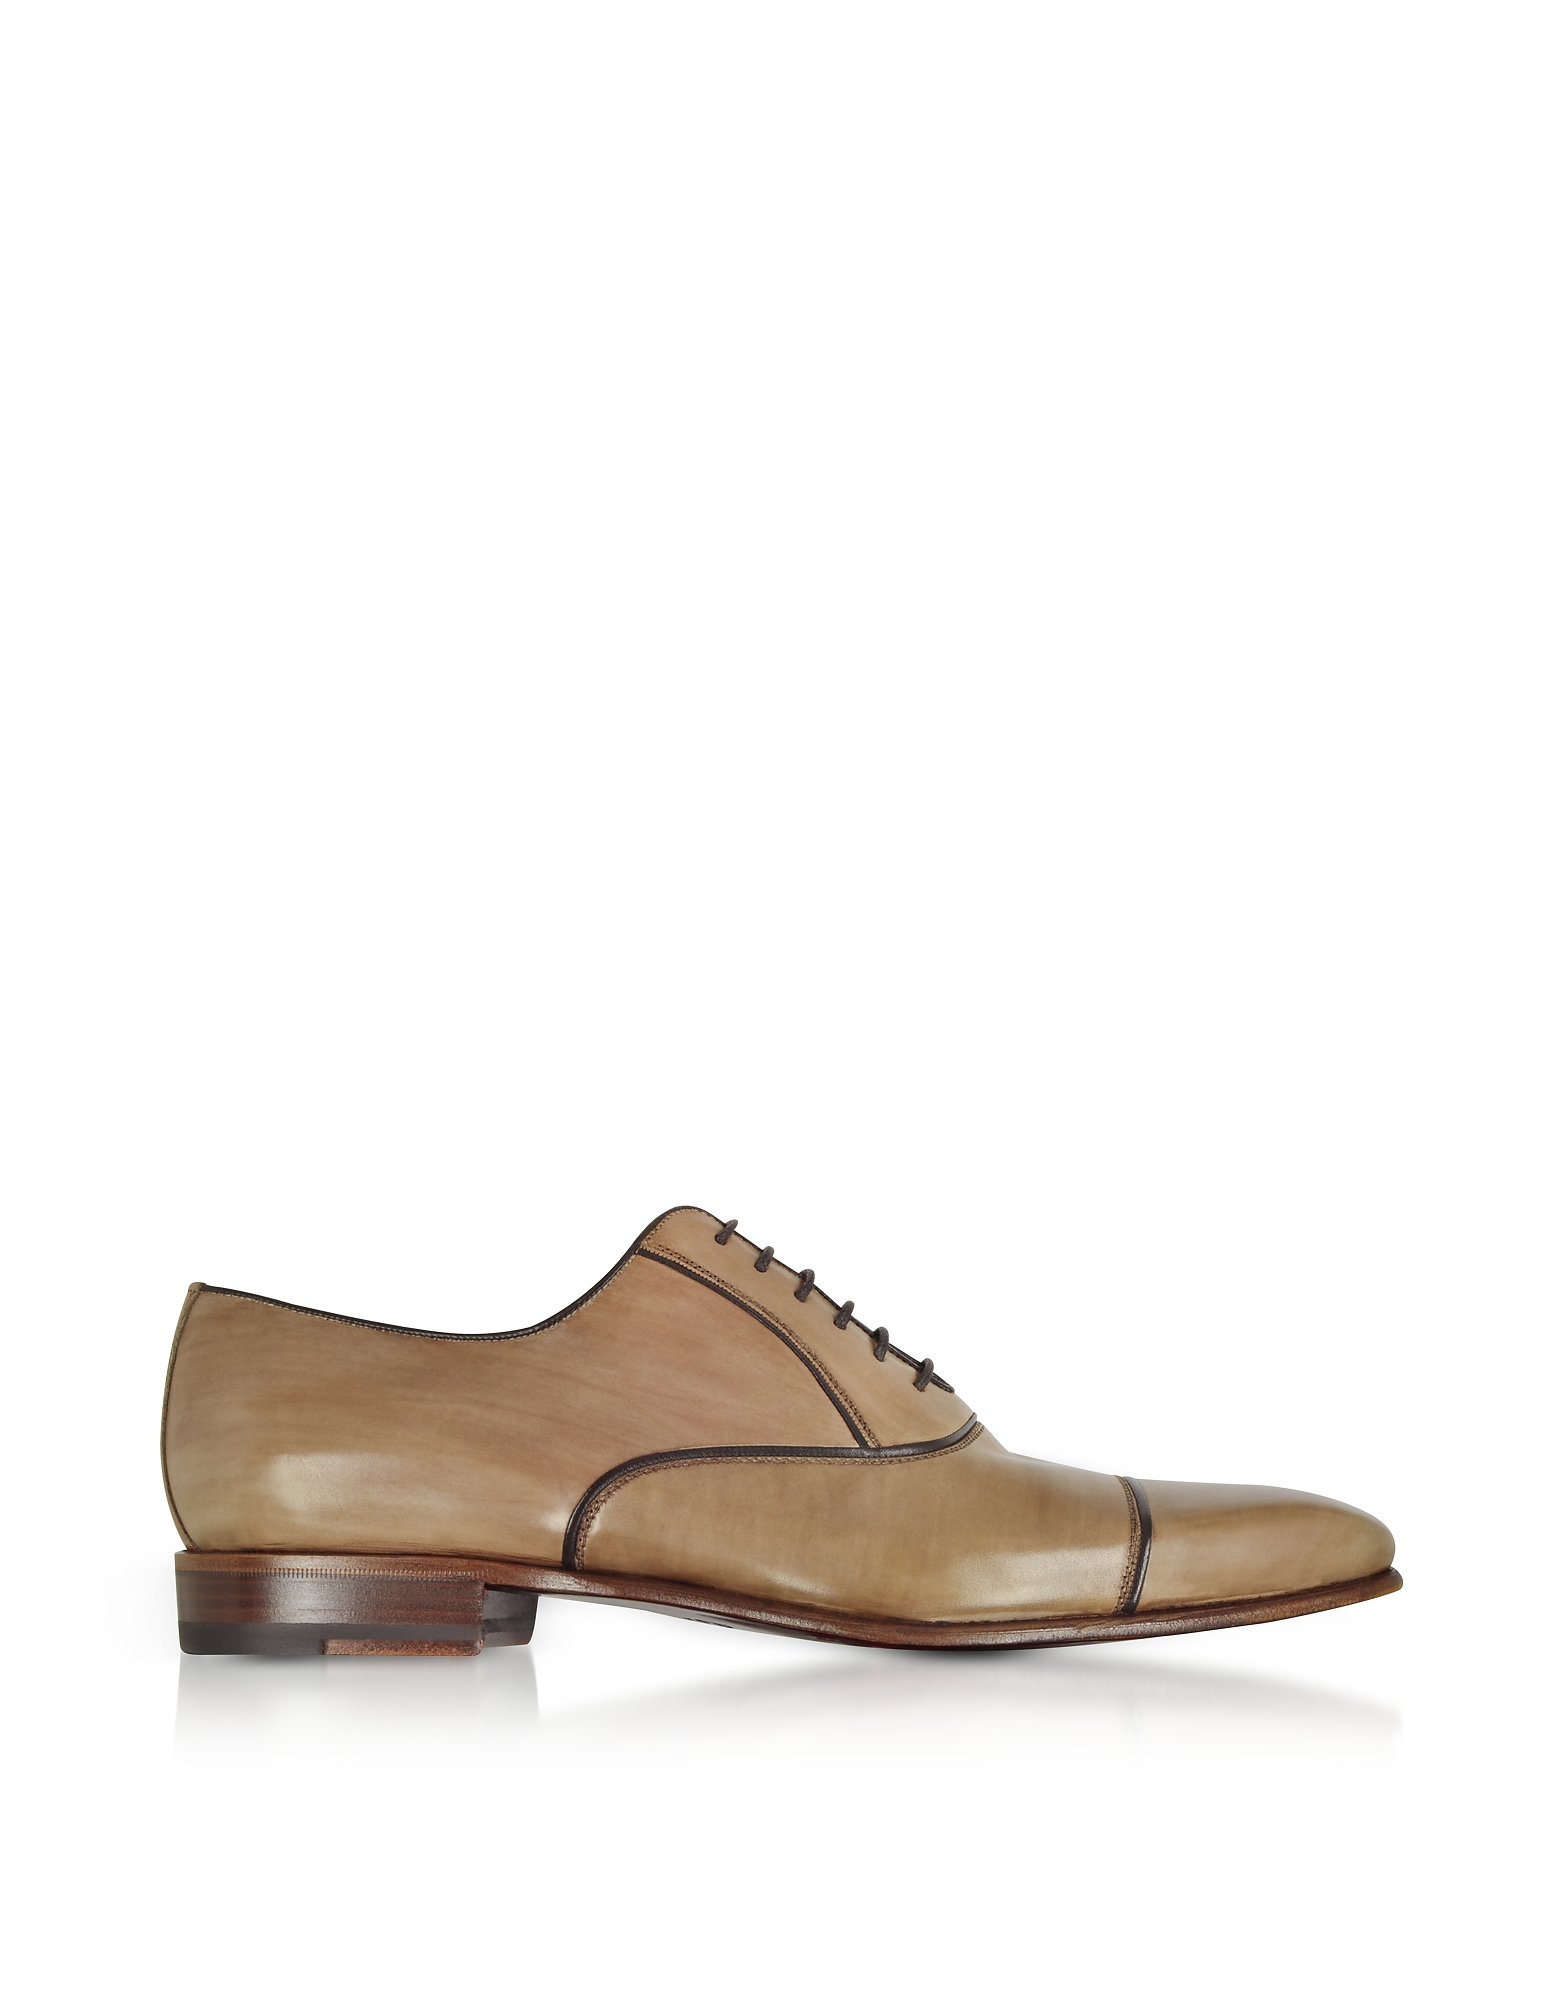 Fratelli Borgioli Shoes, Cenere Brown Leather Oxford Shoes